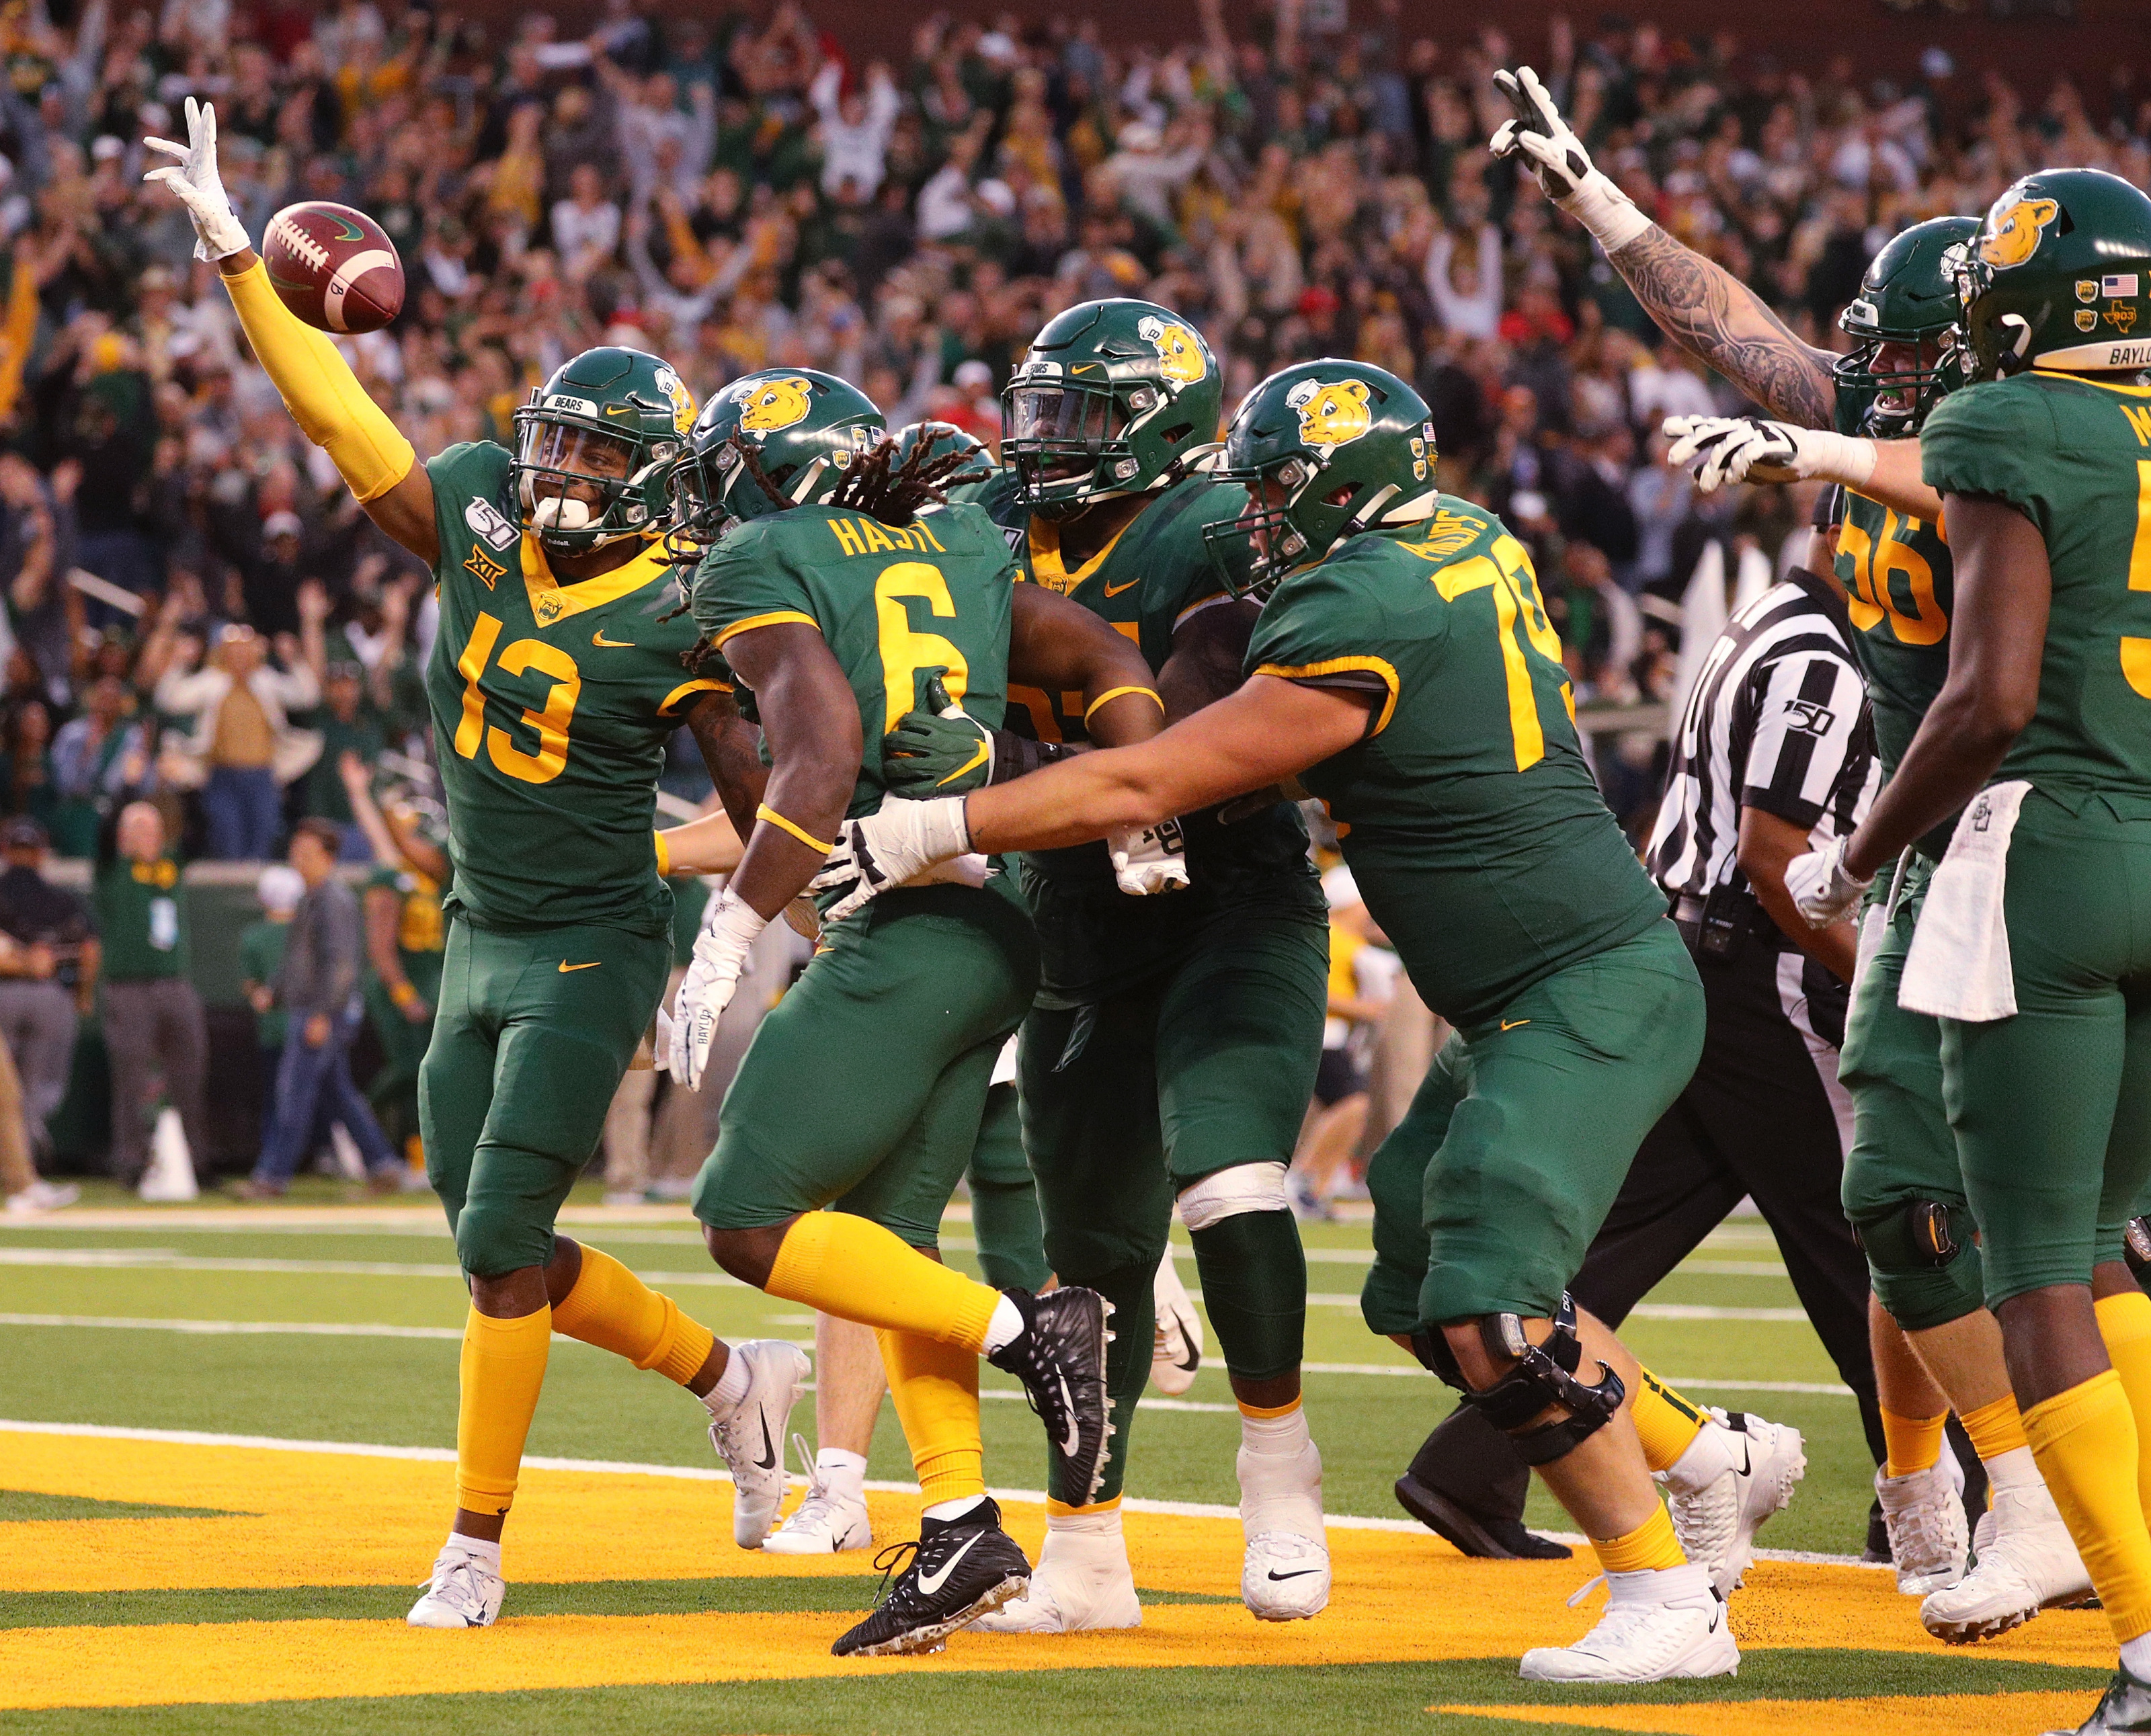 Baylor Football Aiming To Build Some Momentum Against Texas Tech